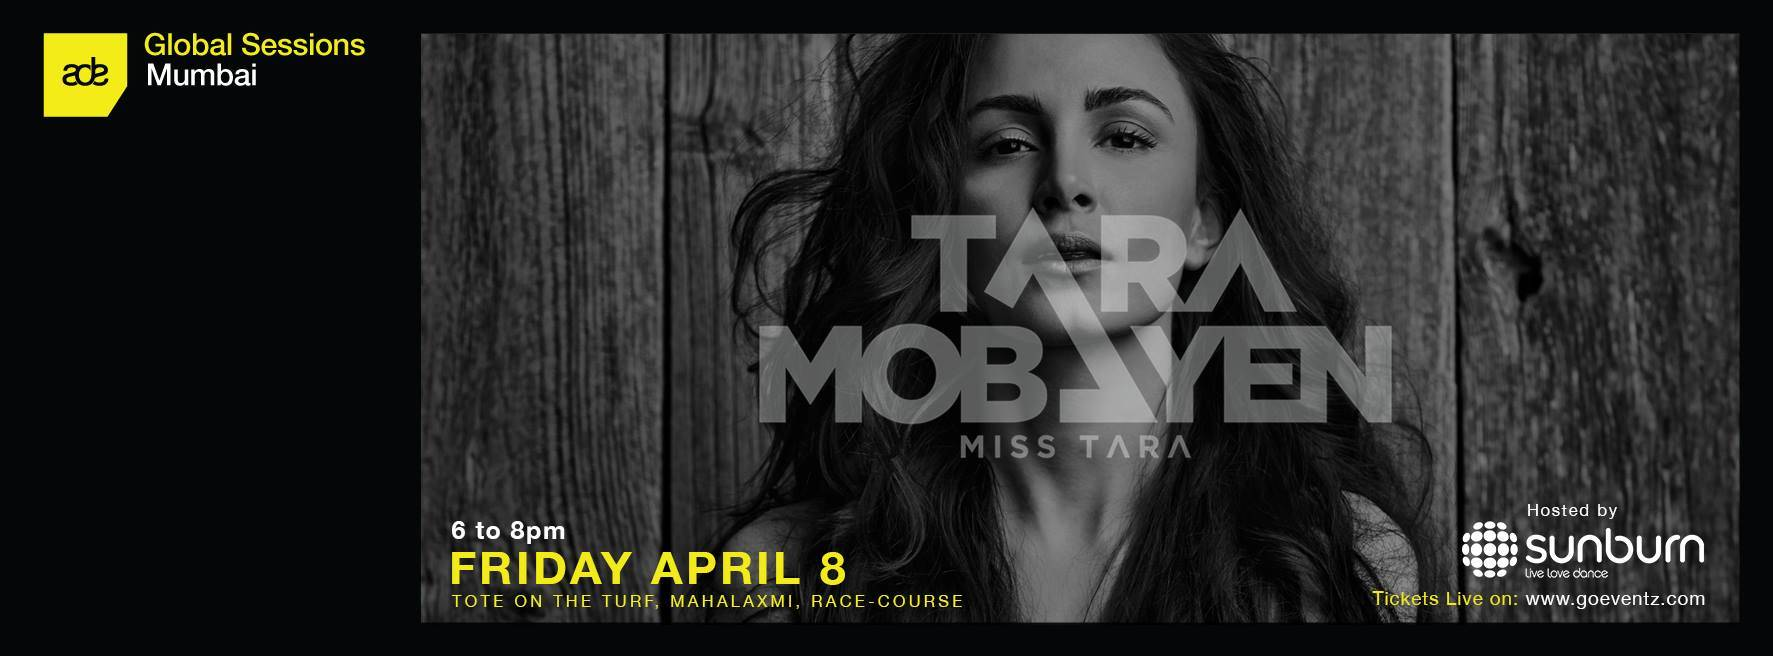 ADE Global Sessions MISS TARA Mumbai, India